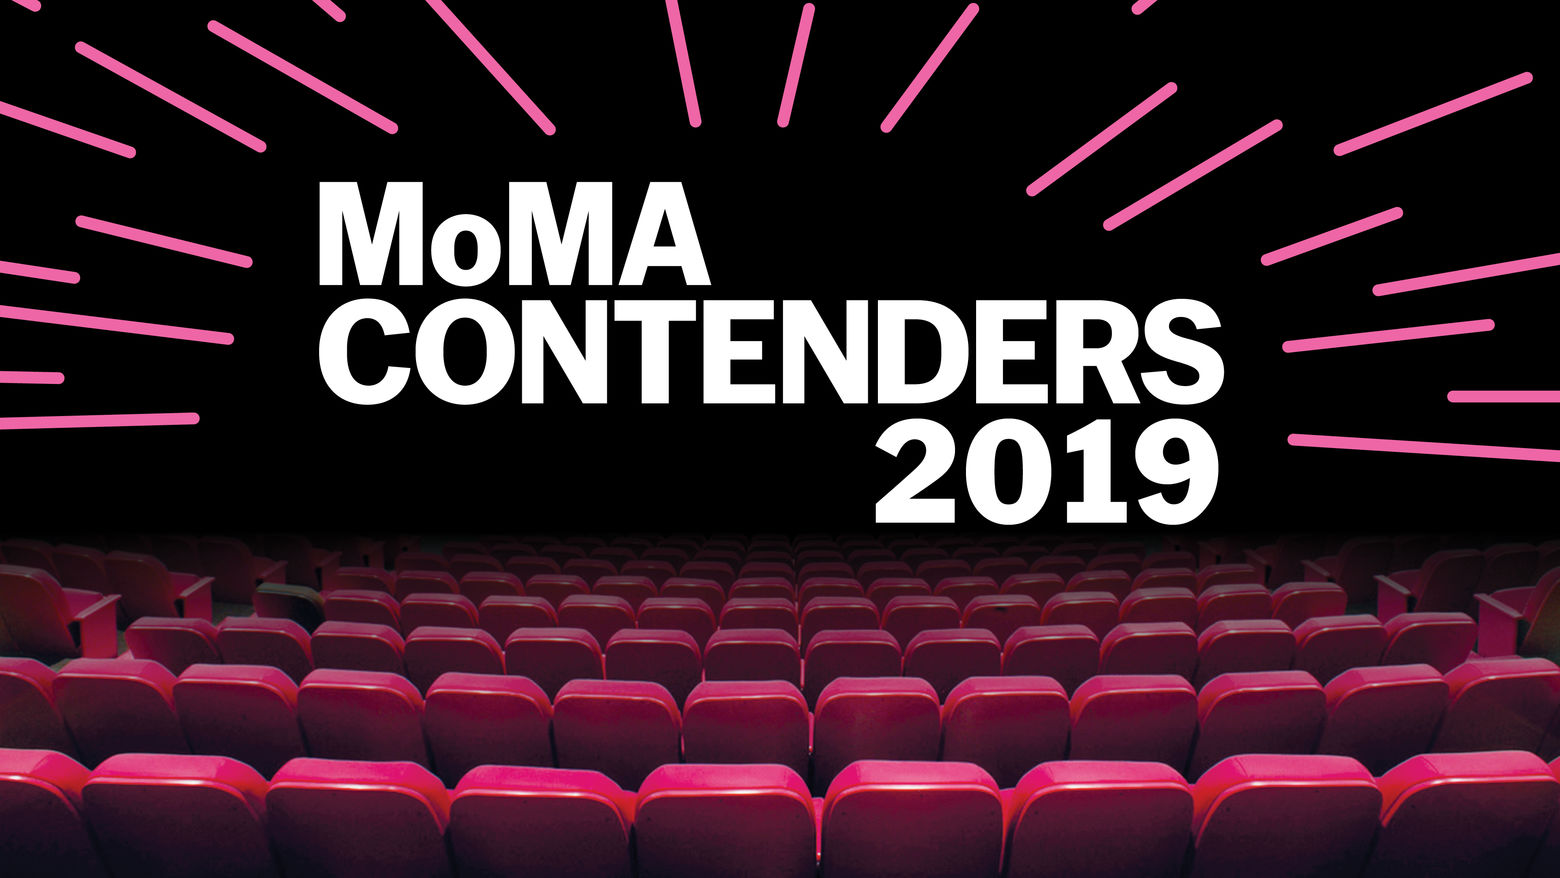 MoMA Contenders 2019